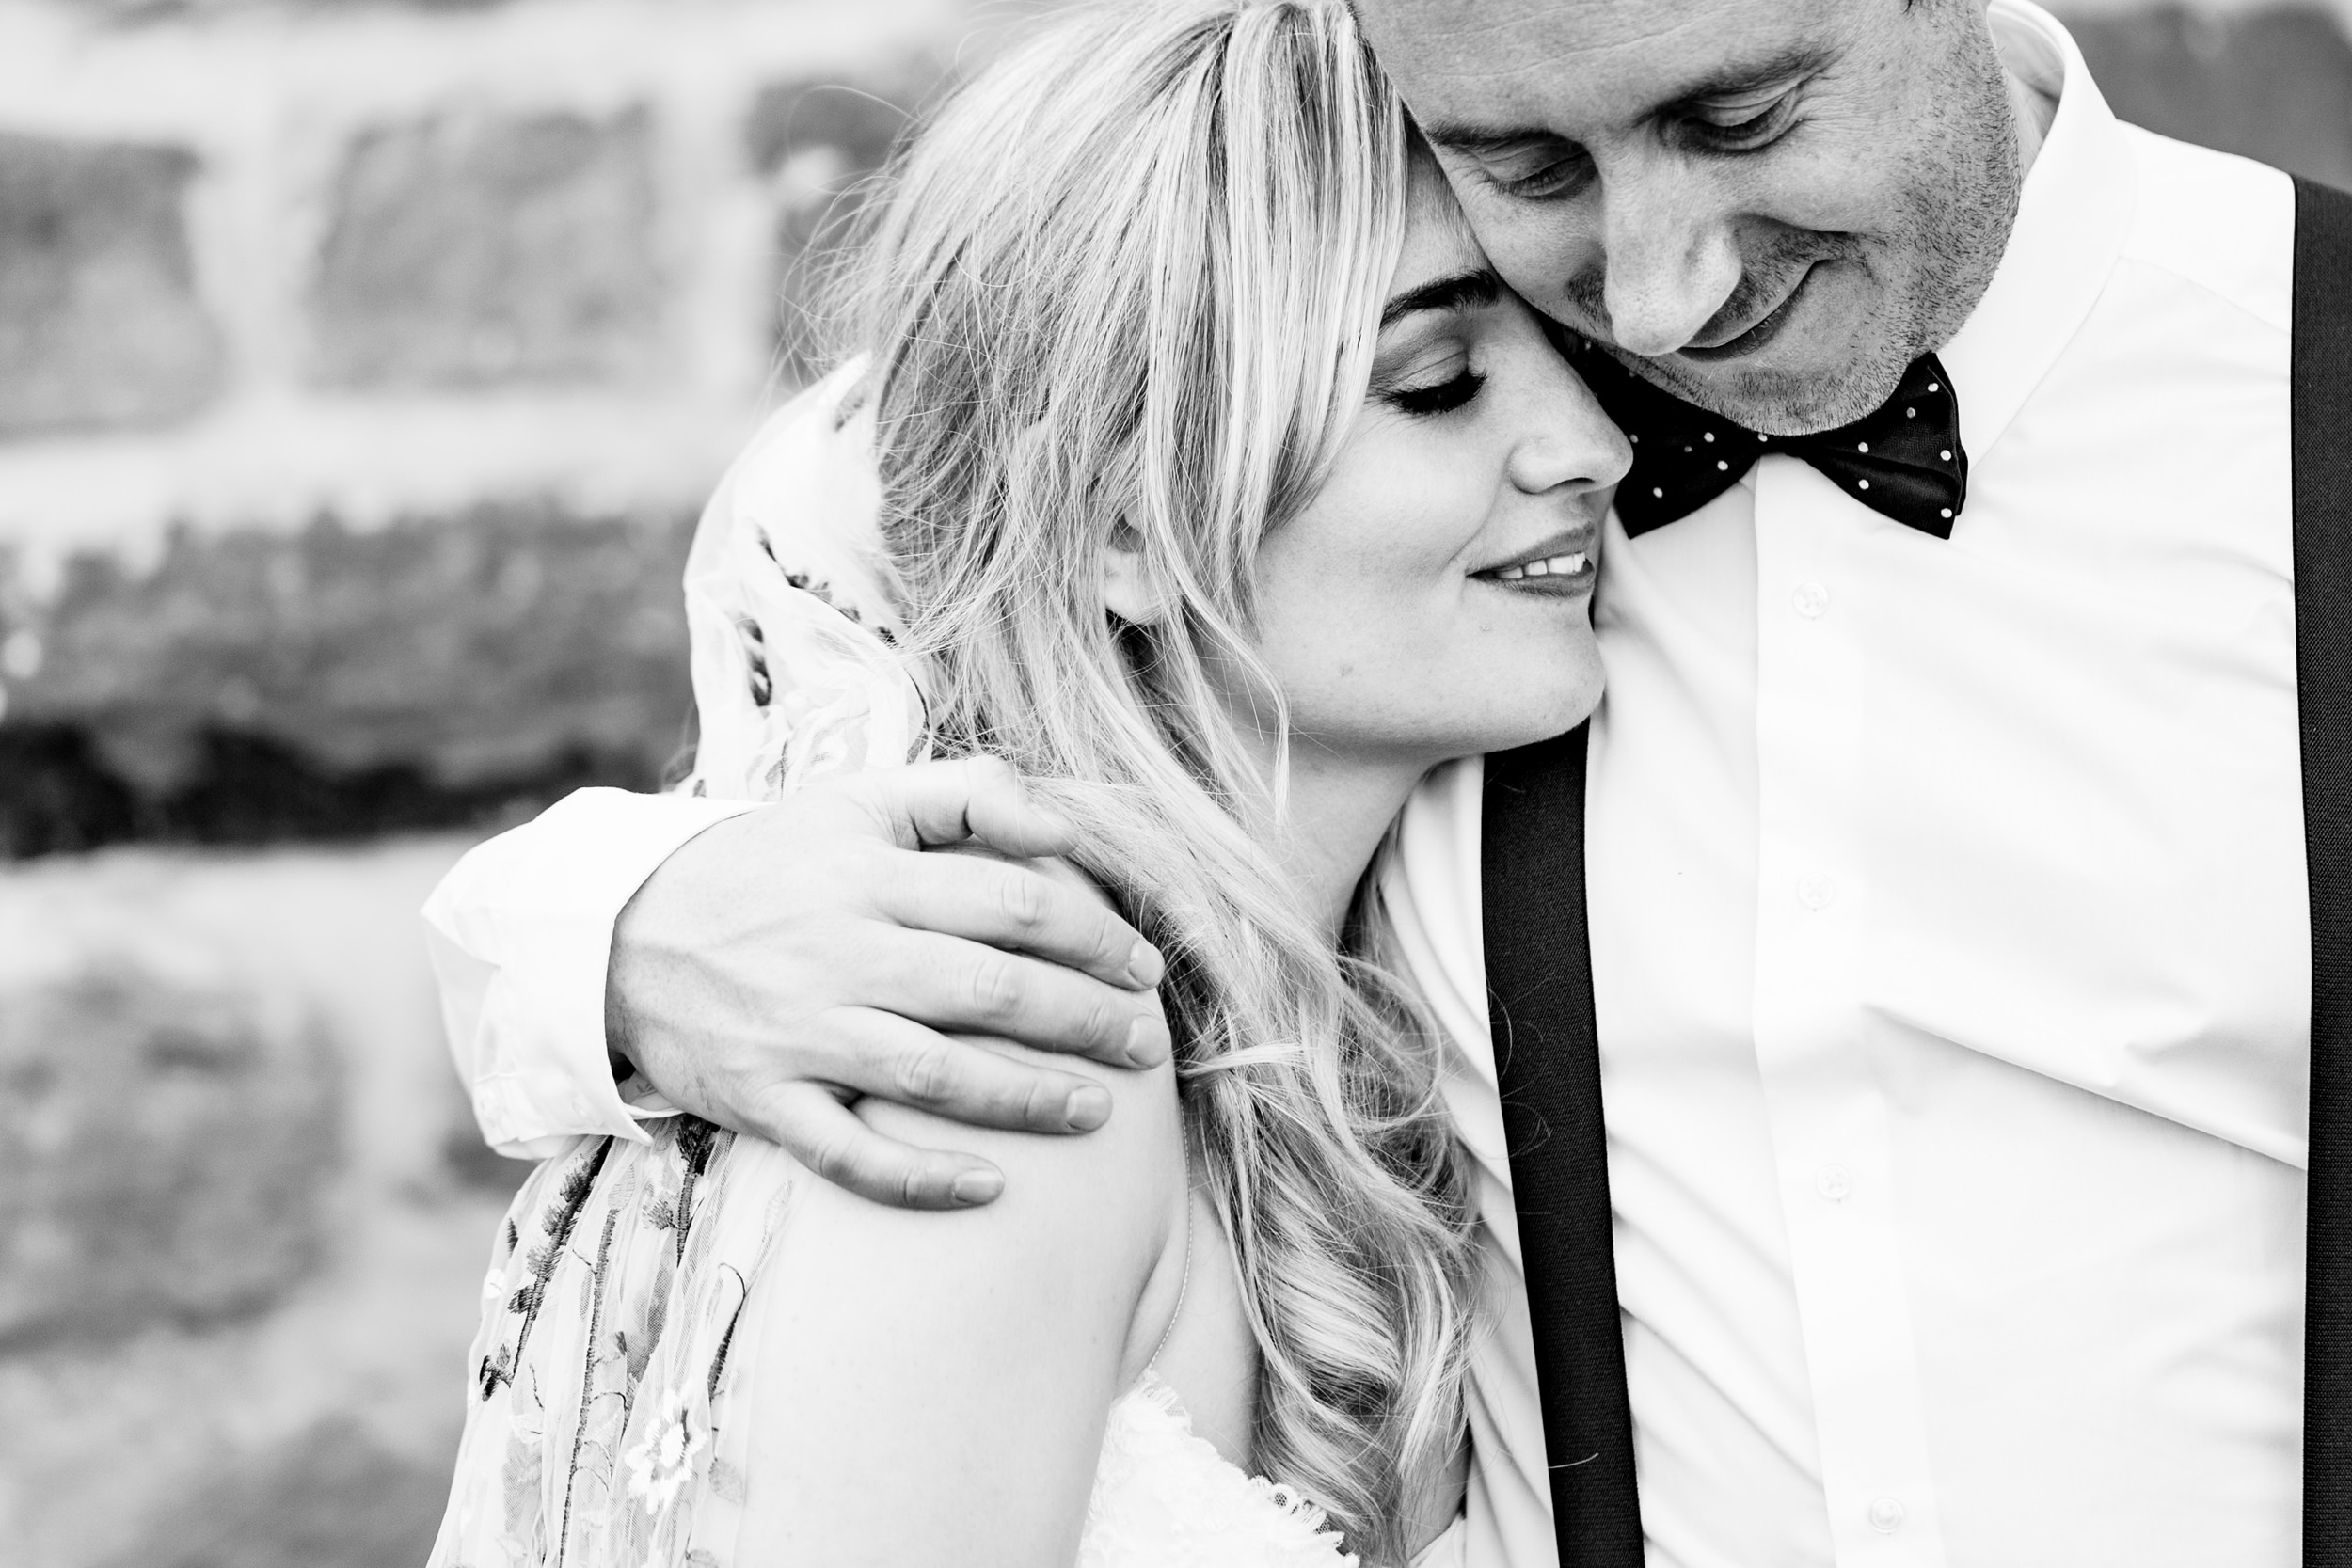 bride and groom portrait. wildwood and eden wedding photography by emma and rich.